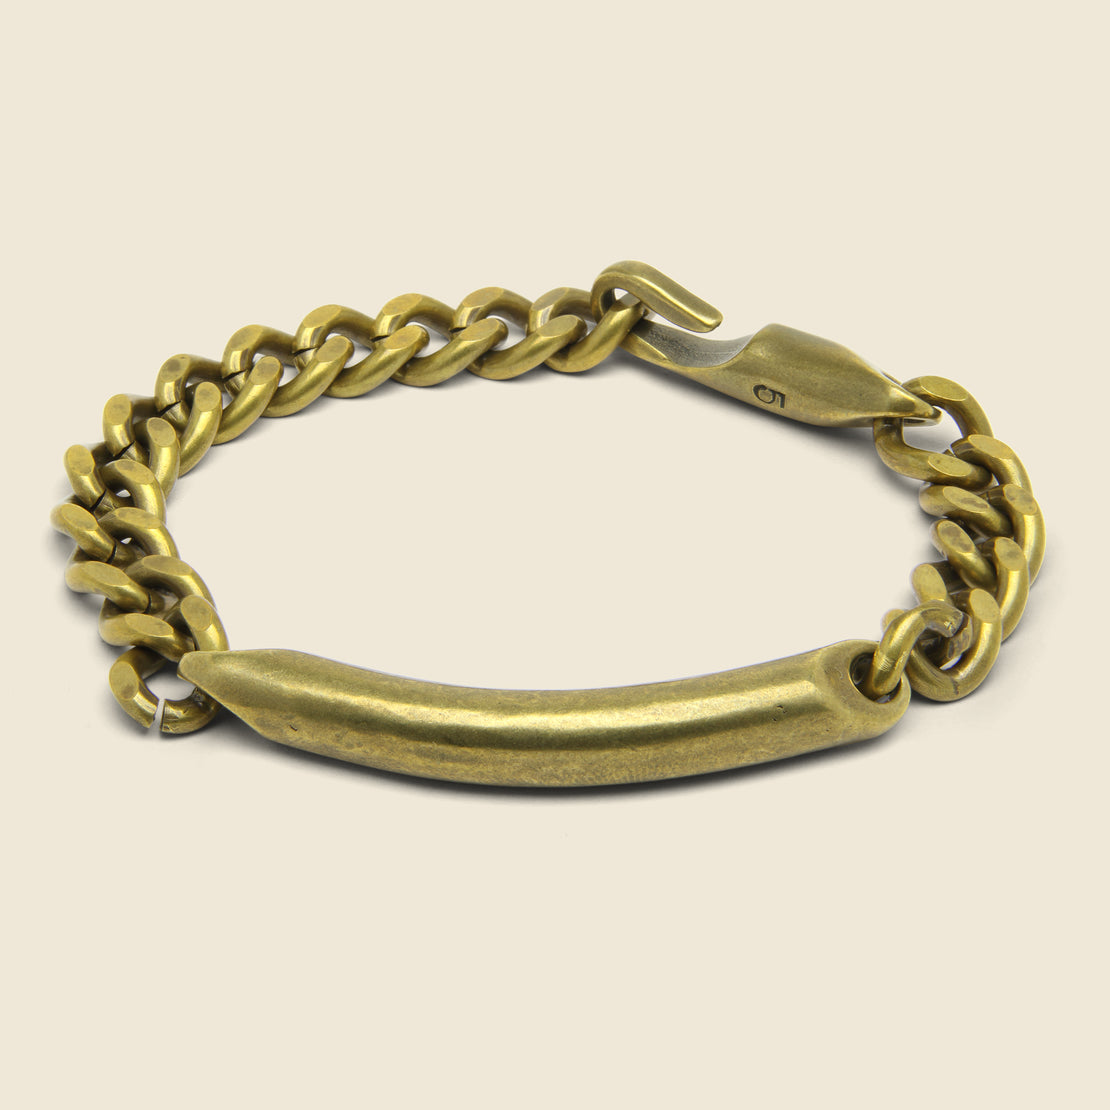 Giles & Brother ID Chain Bracelet - Brass